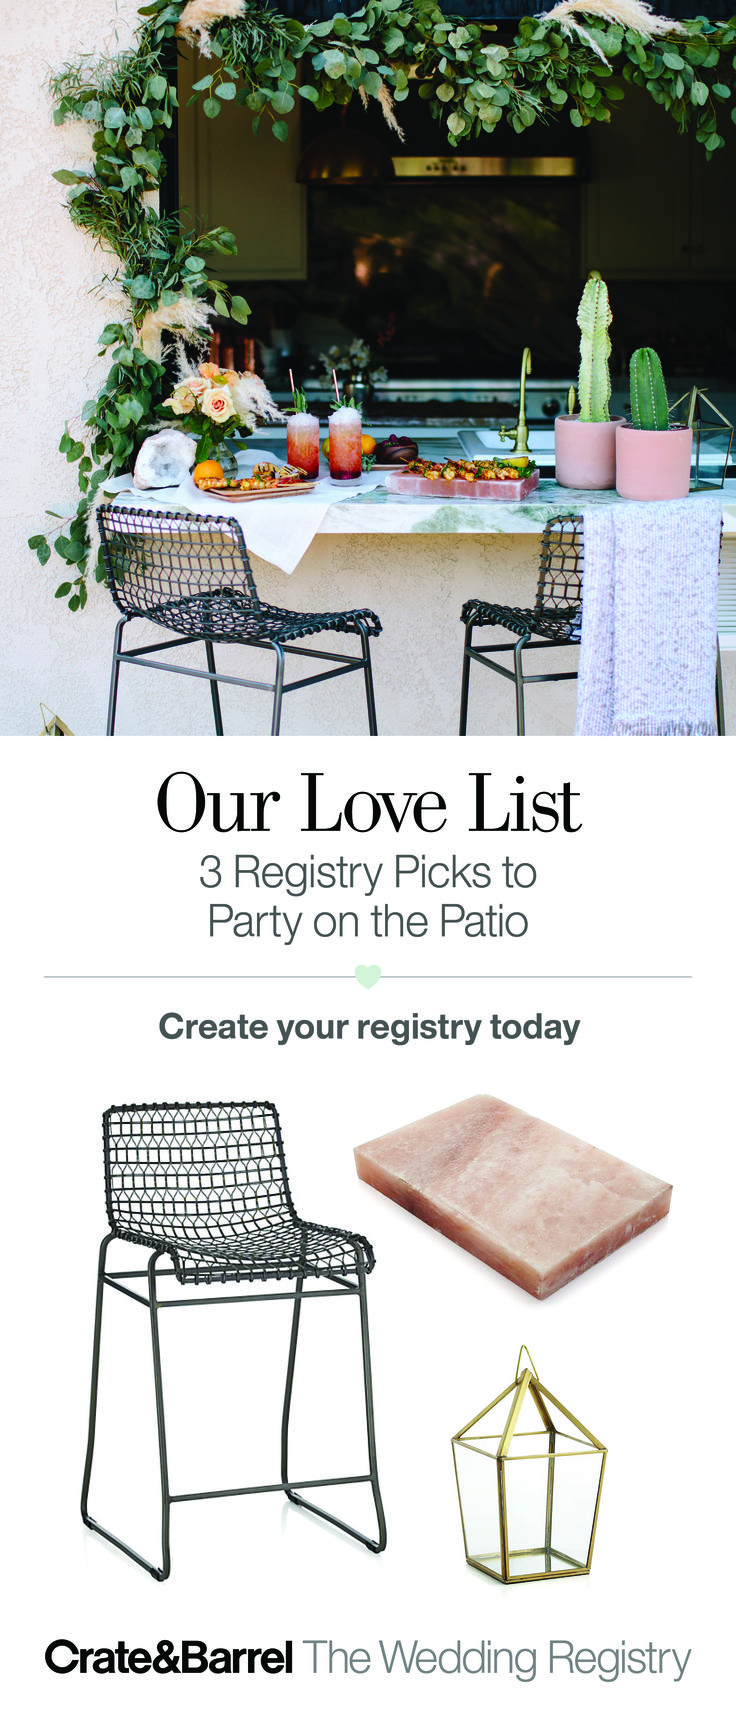 Outdoor entertaining is such a breath of fresh air. Our friends at 100 Layer Cake keep it breezy with a mix of materials: industrial wire bar stools mingle with a pink Himalayan salt block and modern brass lantern. Create your registry today and get the patio party started.